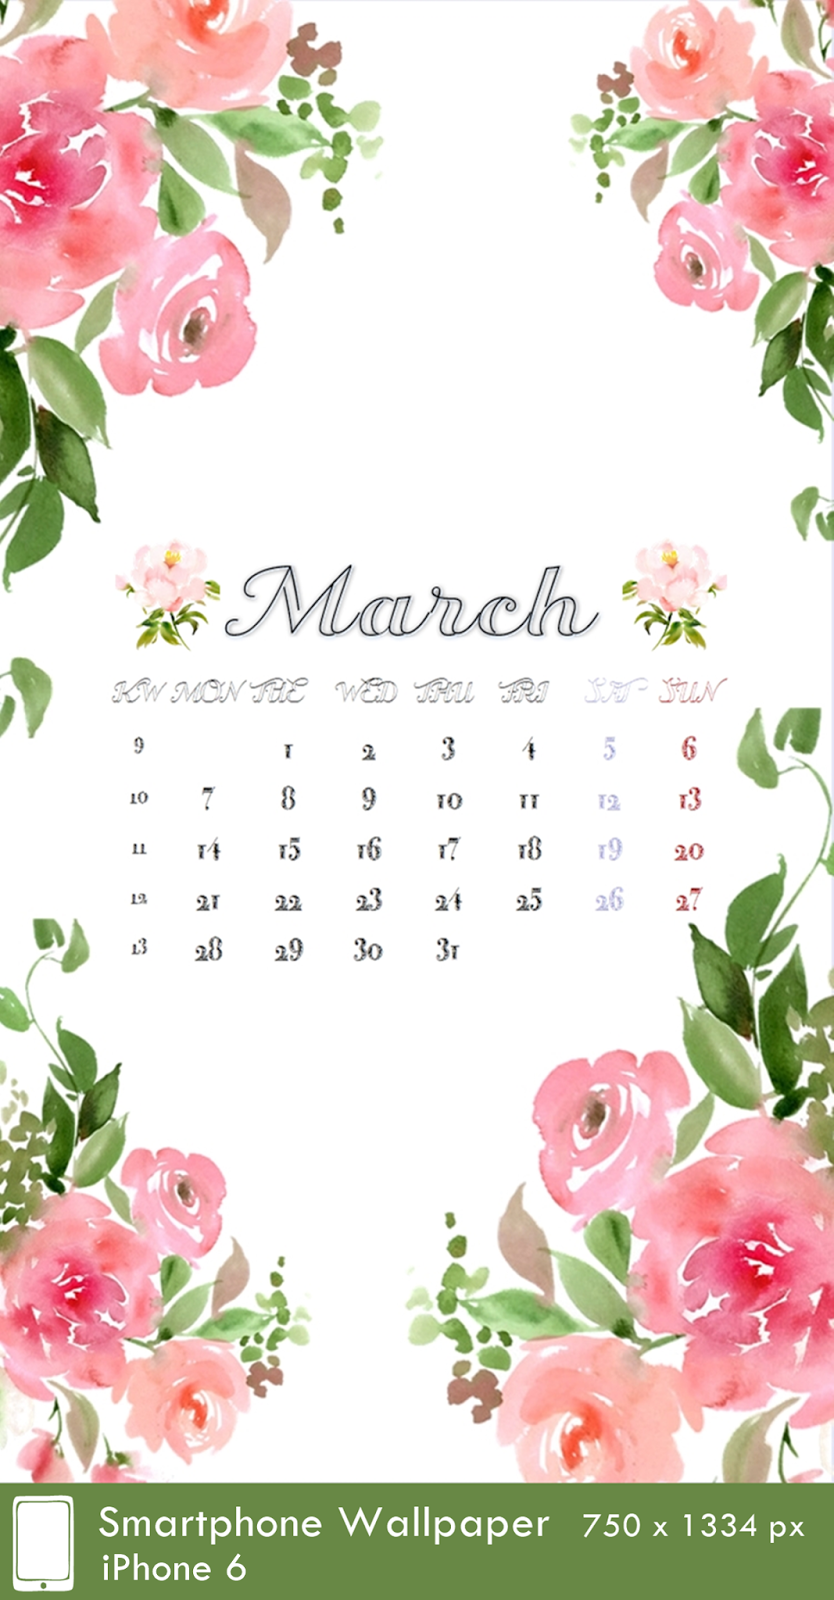 iPhone 6 Wallpaper 750 x 1334px Calendar 3 March 2016